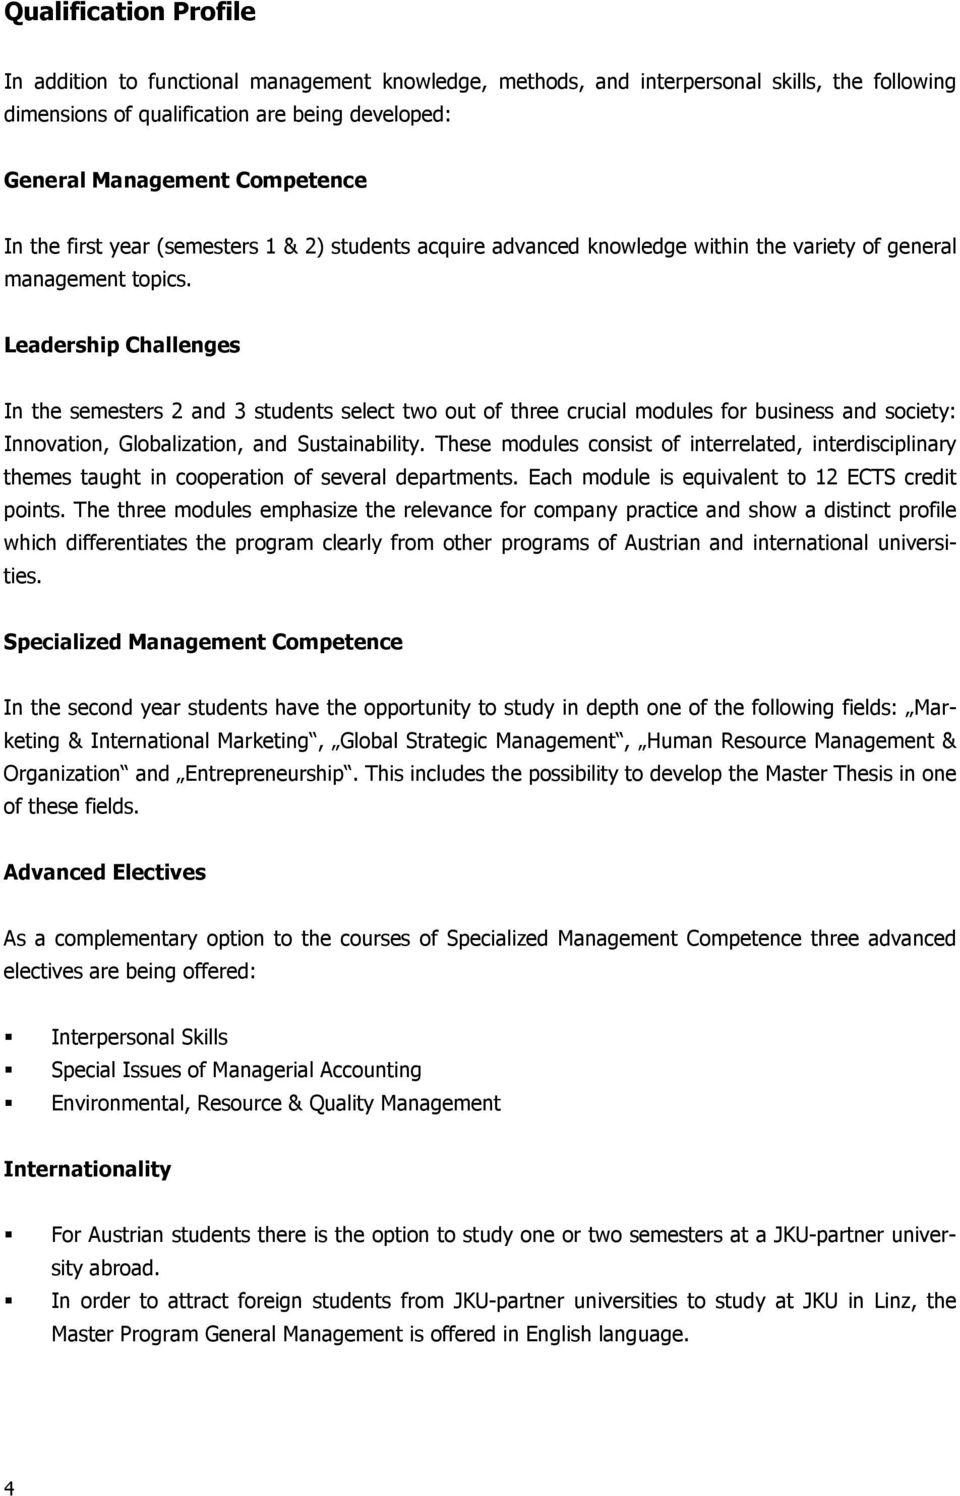 Leadership Challenges In the semesters 2 and 3 students select two out of three crucial modules for business and society: Innovation, Globalization, and Sustainability.